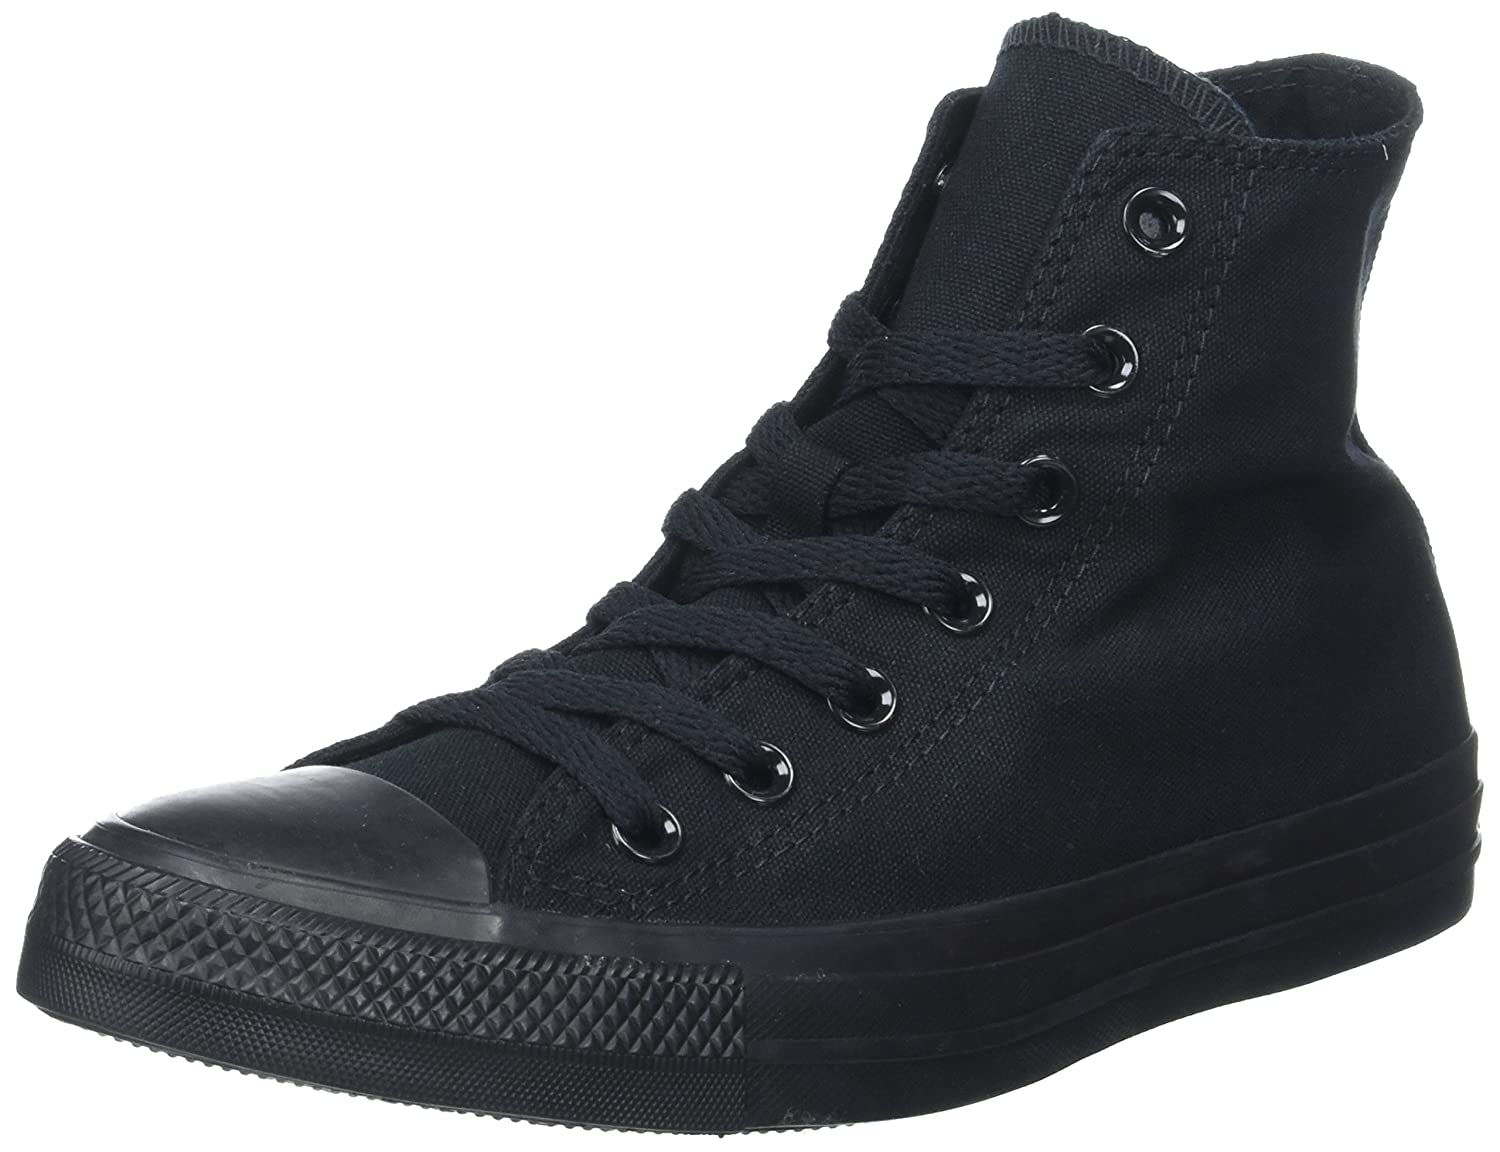 Converse Chuck Taylor All Star Core Hi B00IRXCSIE 10 B(M) US Women / 8 D(M) US Men|Black Monochrome